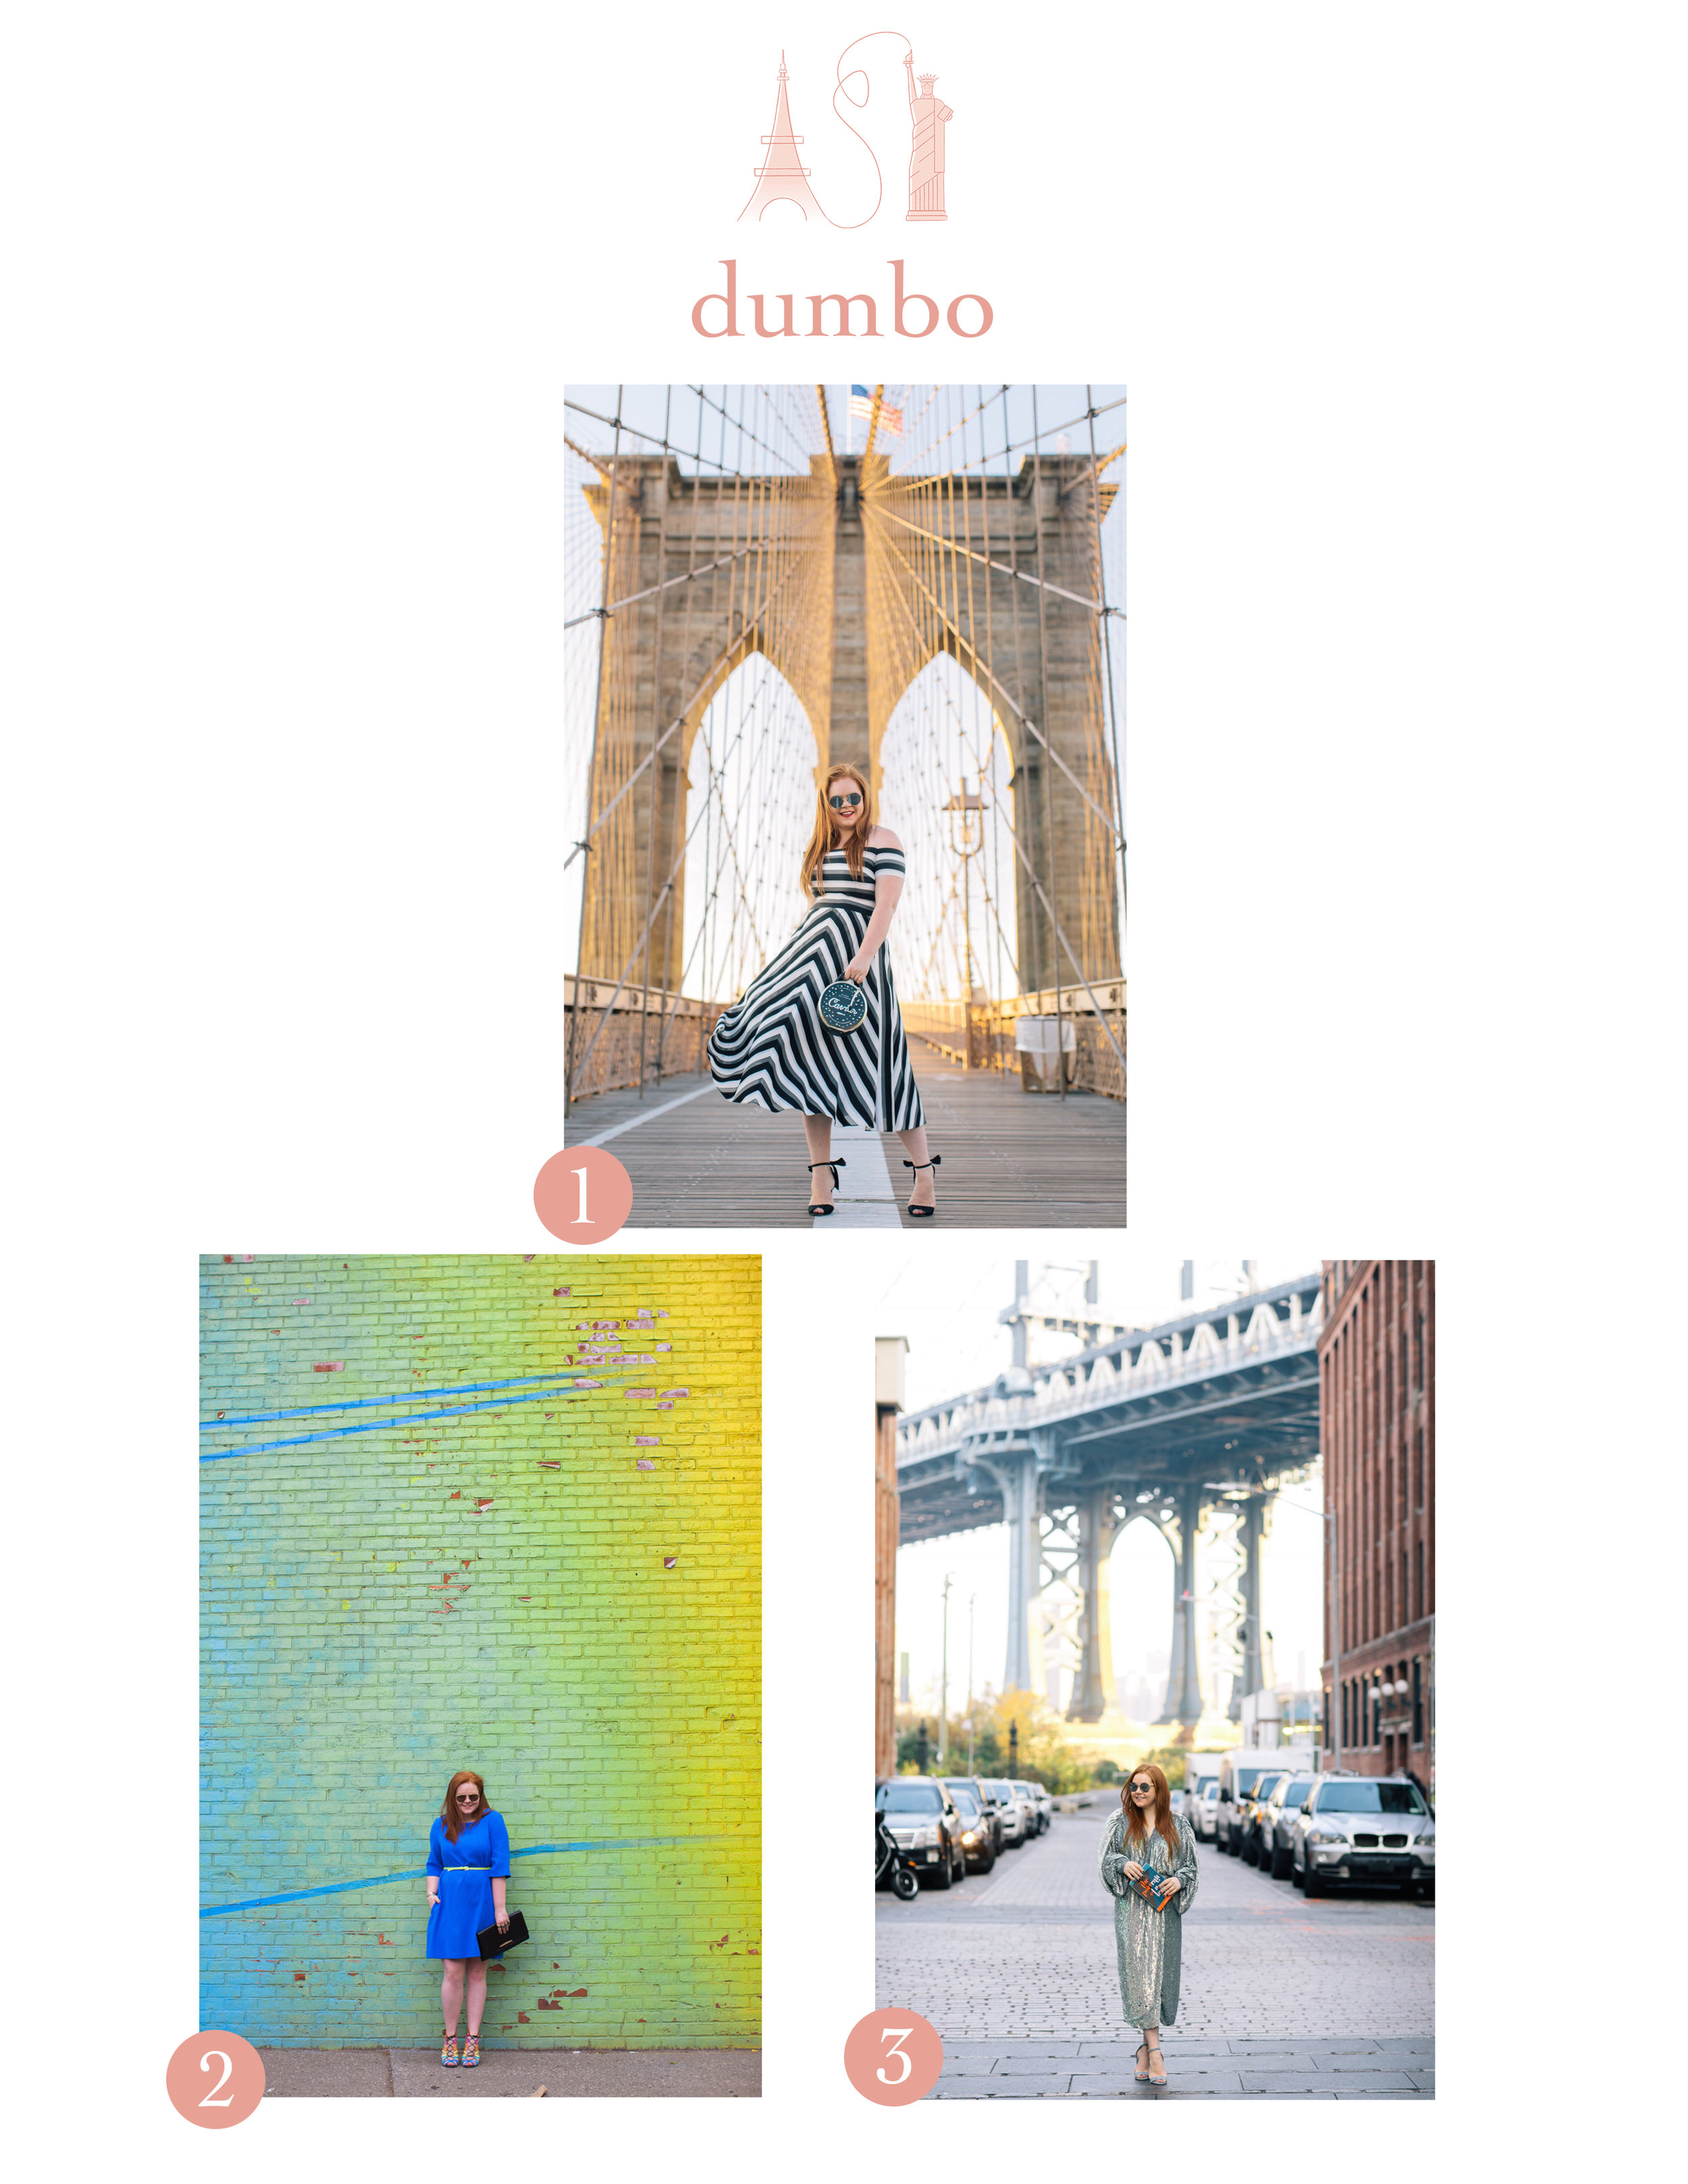 dumbo_photo_locations.jpg